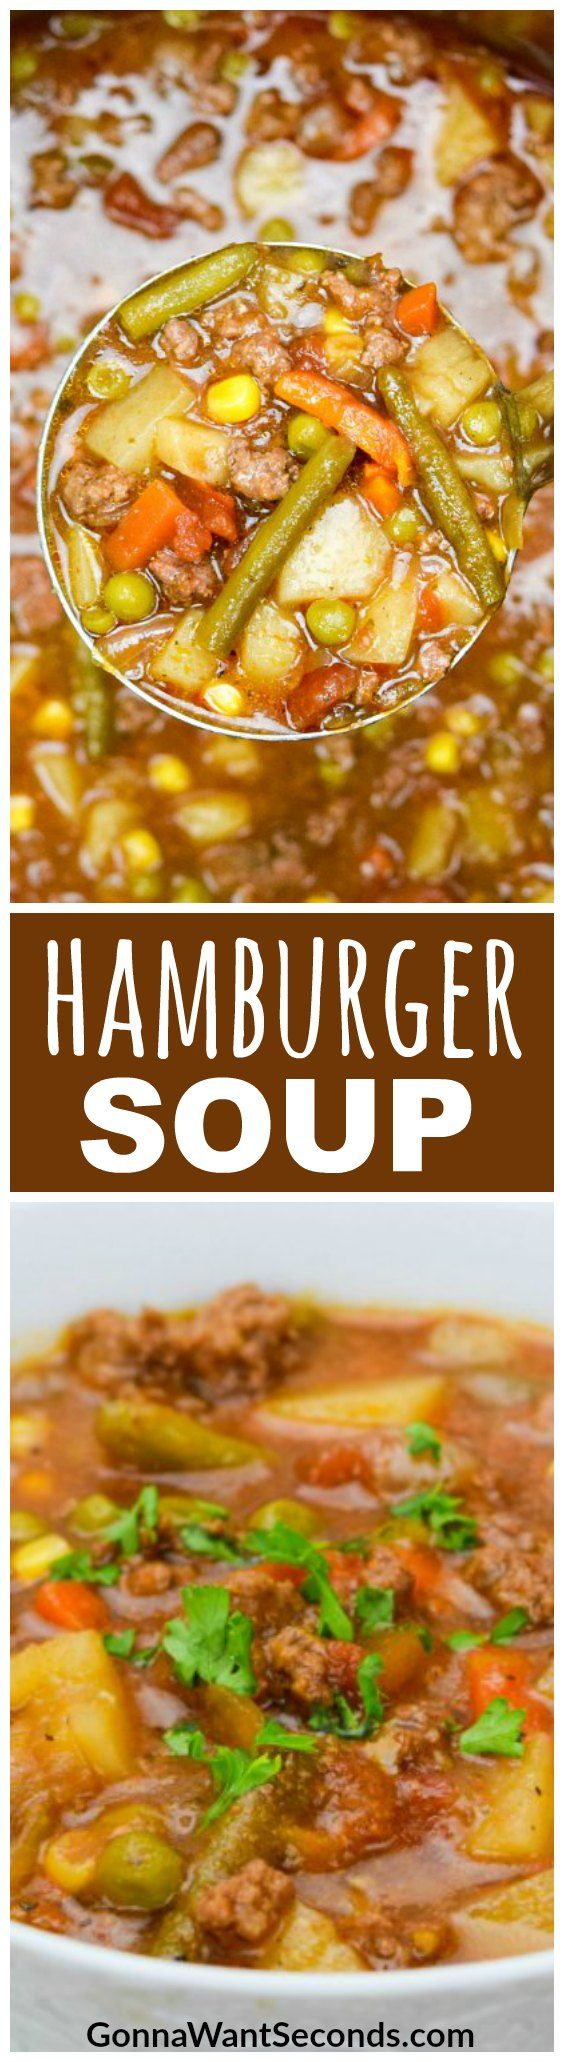 Hamburger Soup is a home-style, hearty meal sure to satisfy healthy appetites and stir up happy memories of Grandma's house.